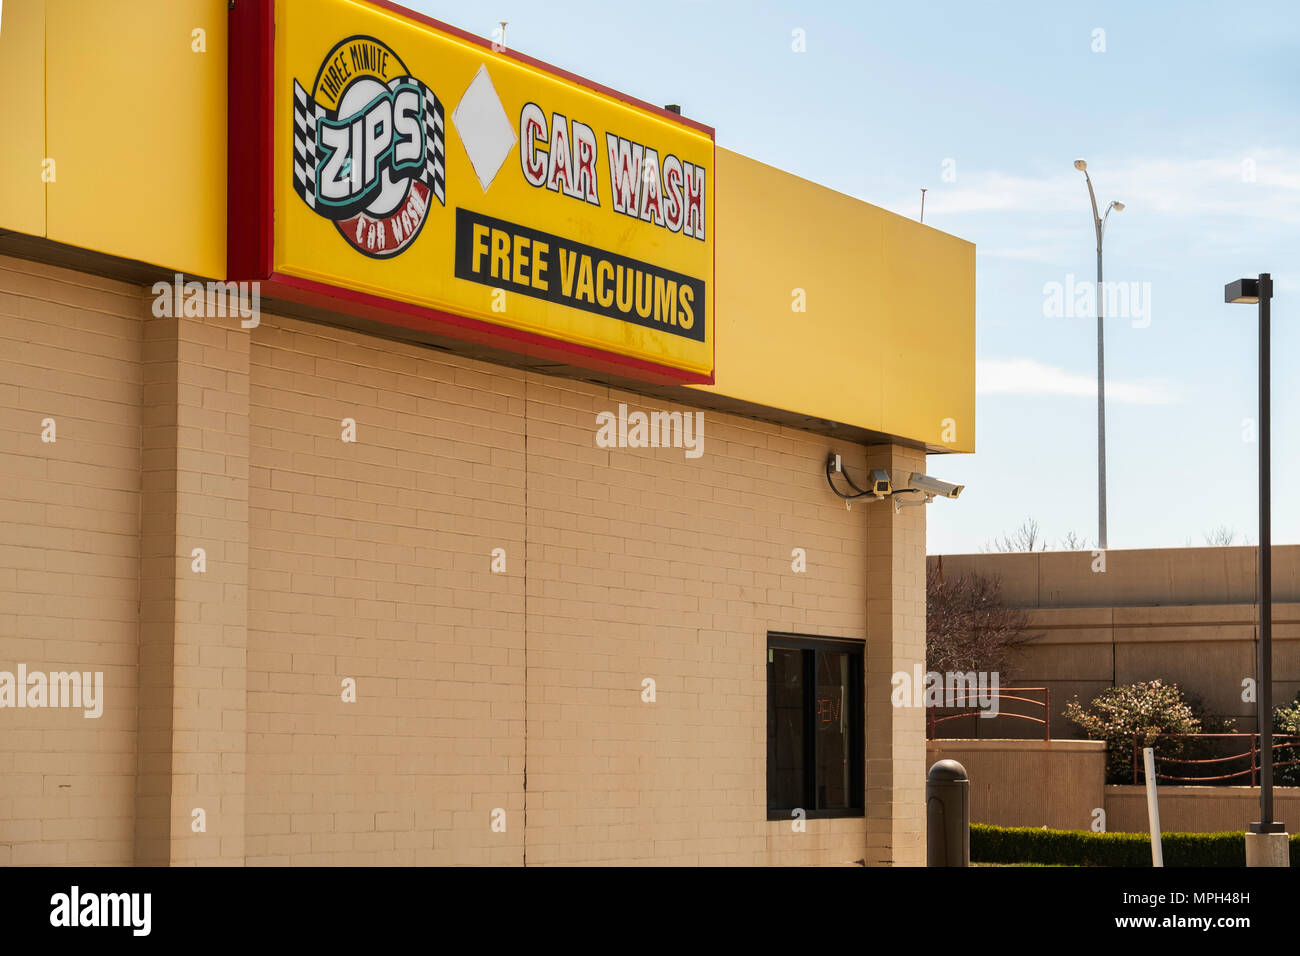 The Exterior Building Of A Zips Car Wash Business In Wichita Kansas